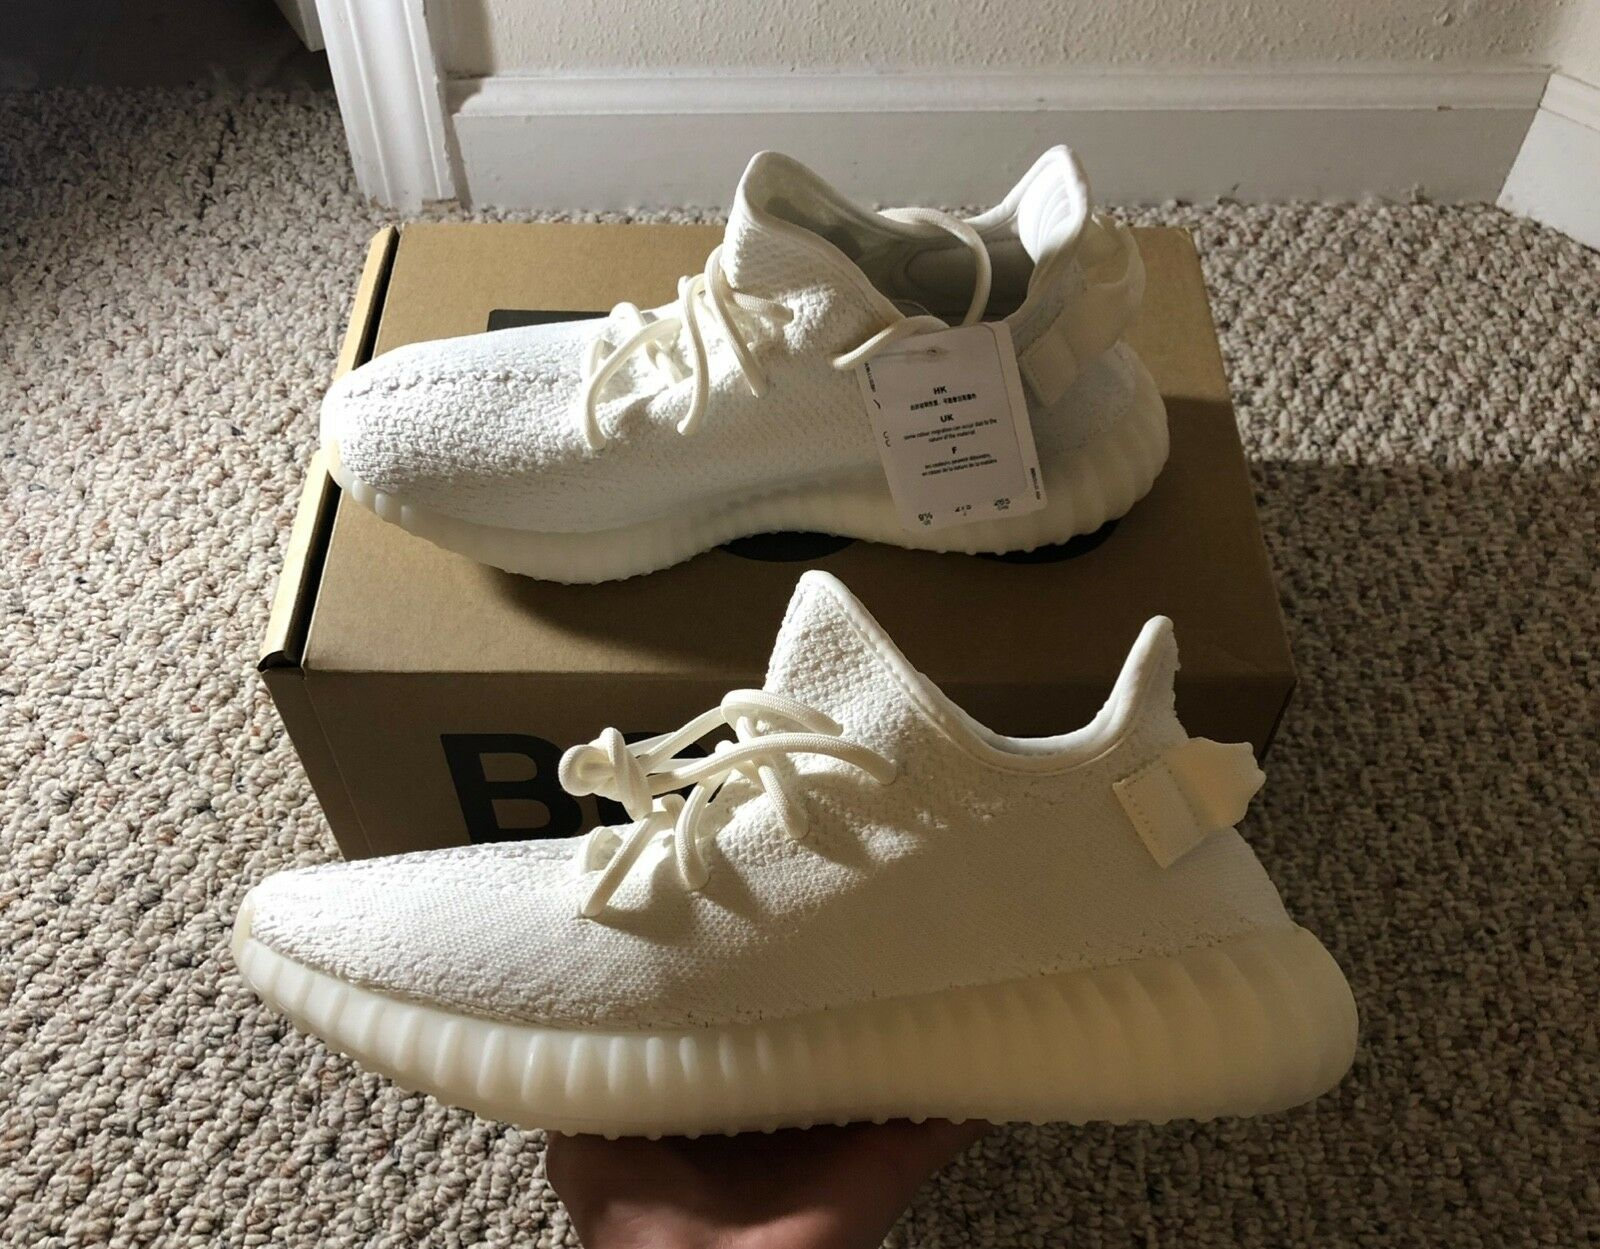 NEW Yeezy Yeezy Yeezy Boost 350 V2 Triple White ea3771